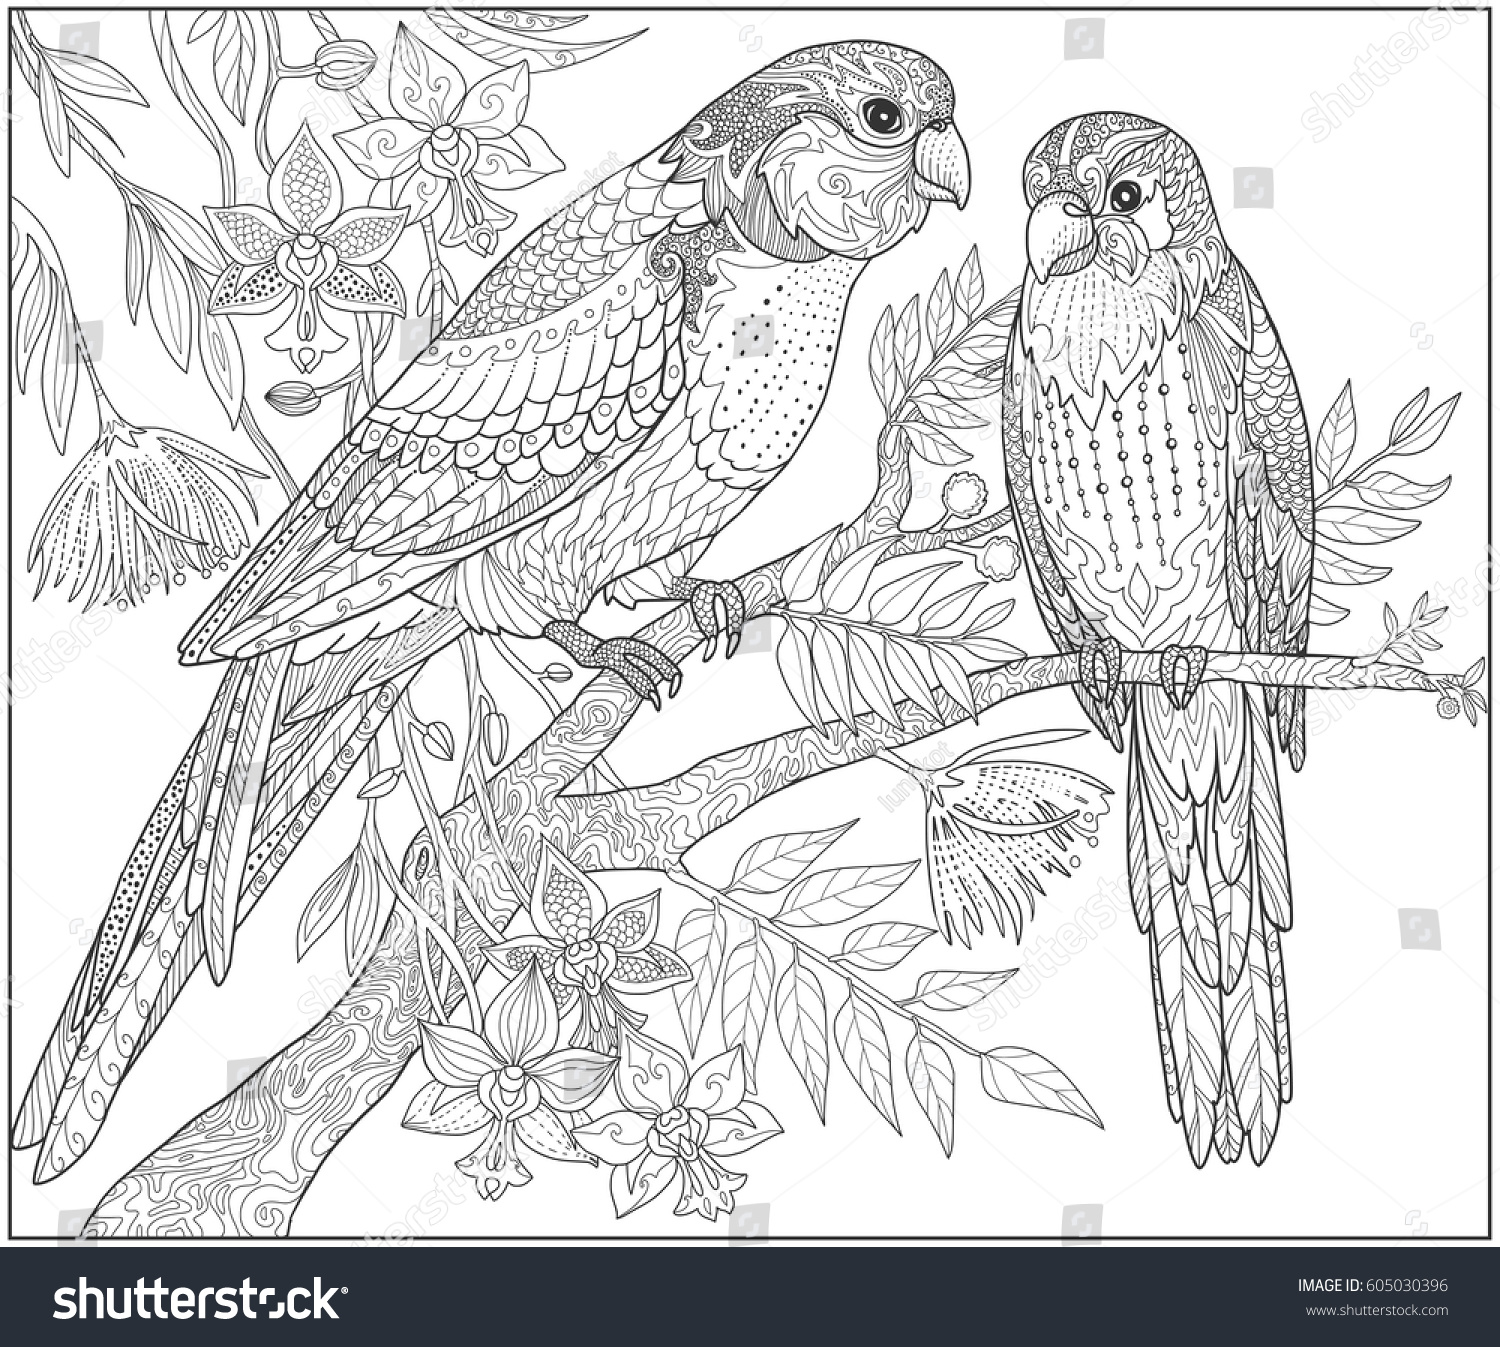 Two Parrots Sit On A Branch In The Jungle Adult Coloring Book Page Doodle